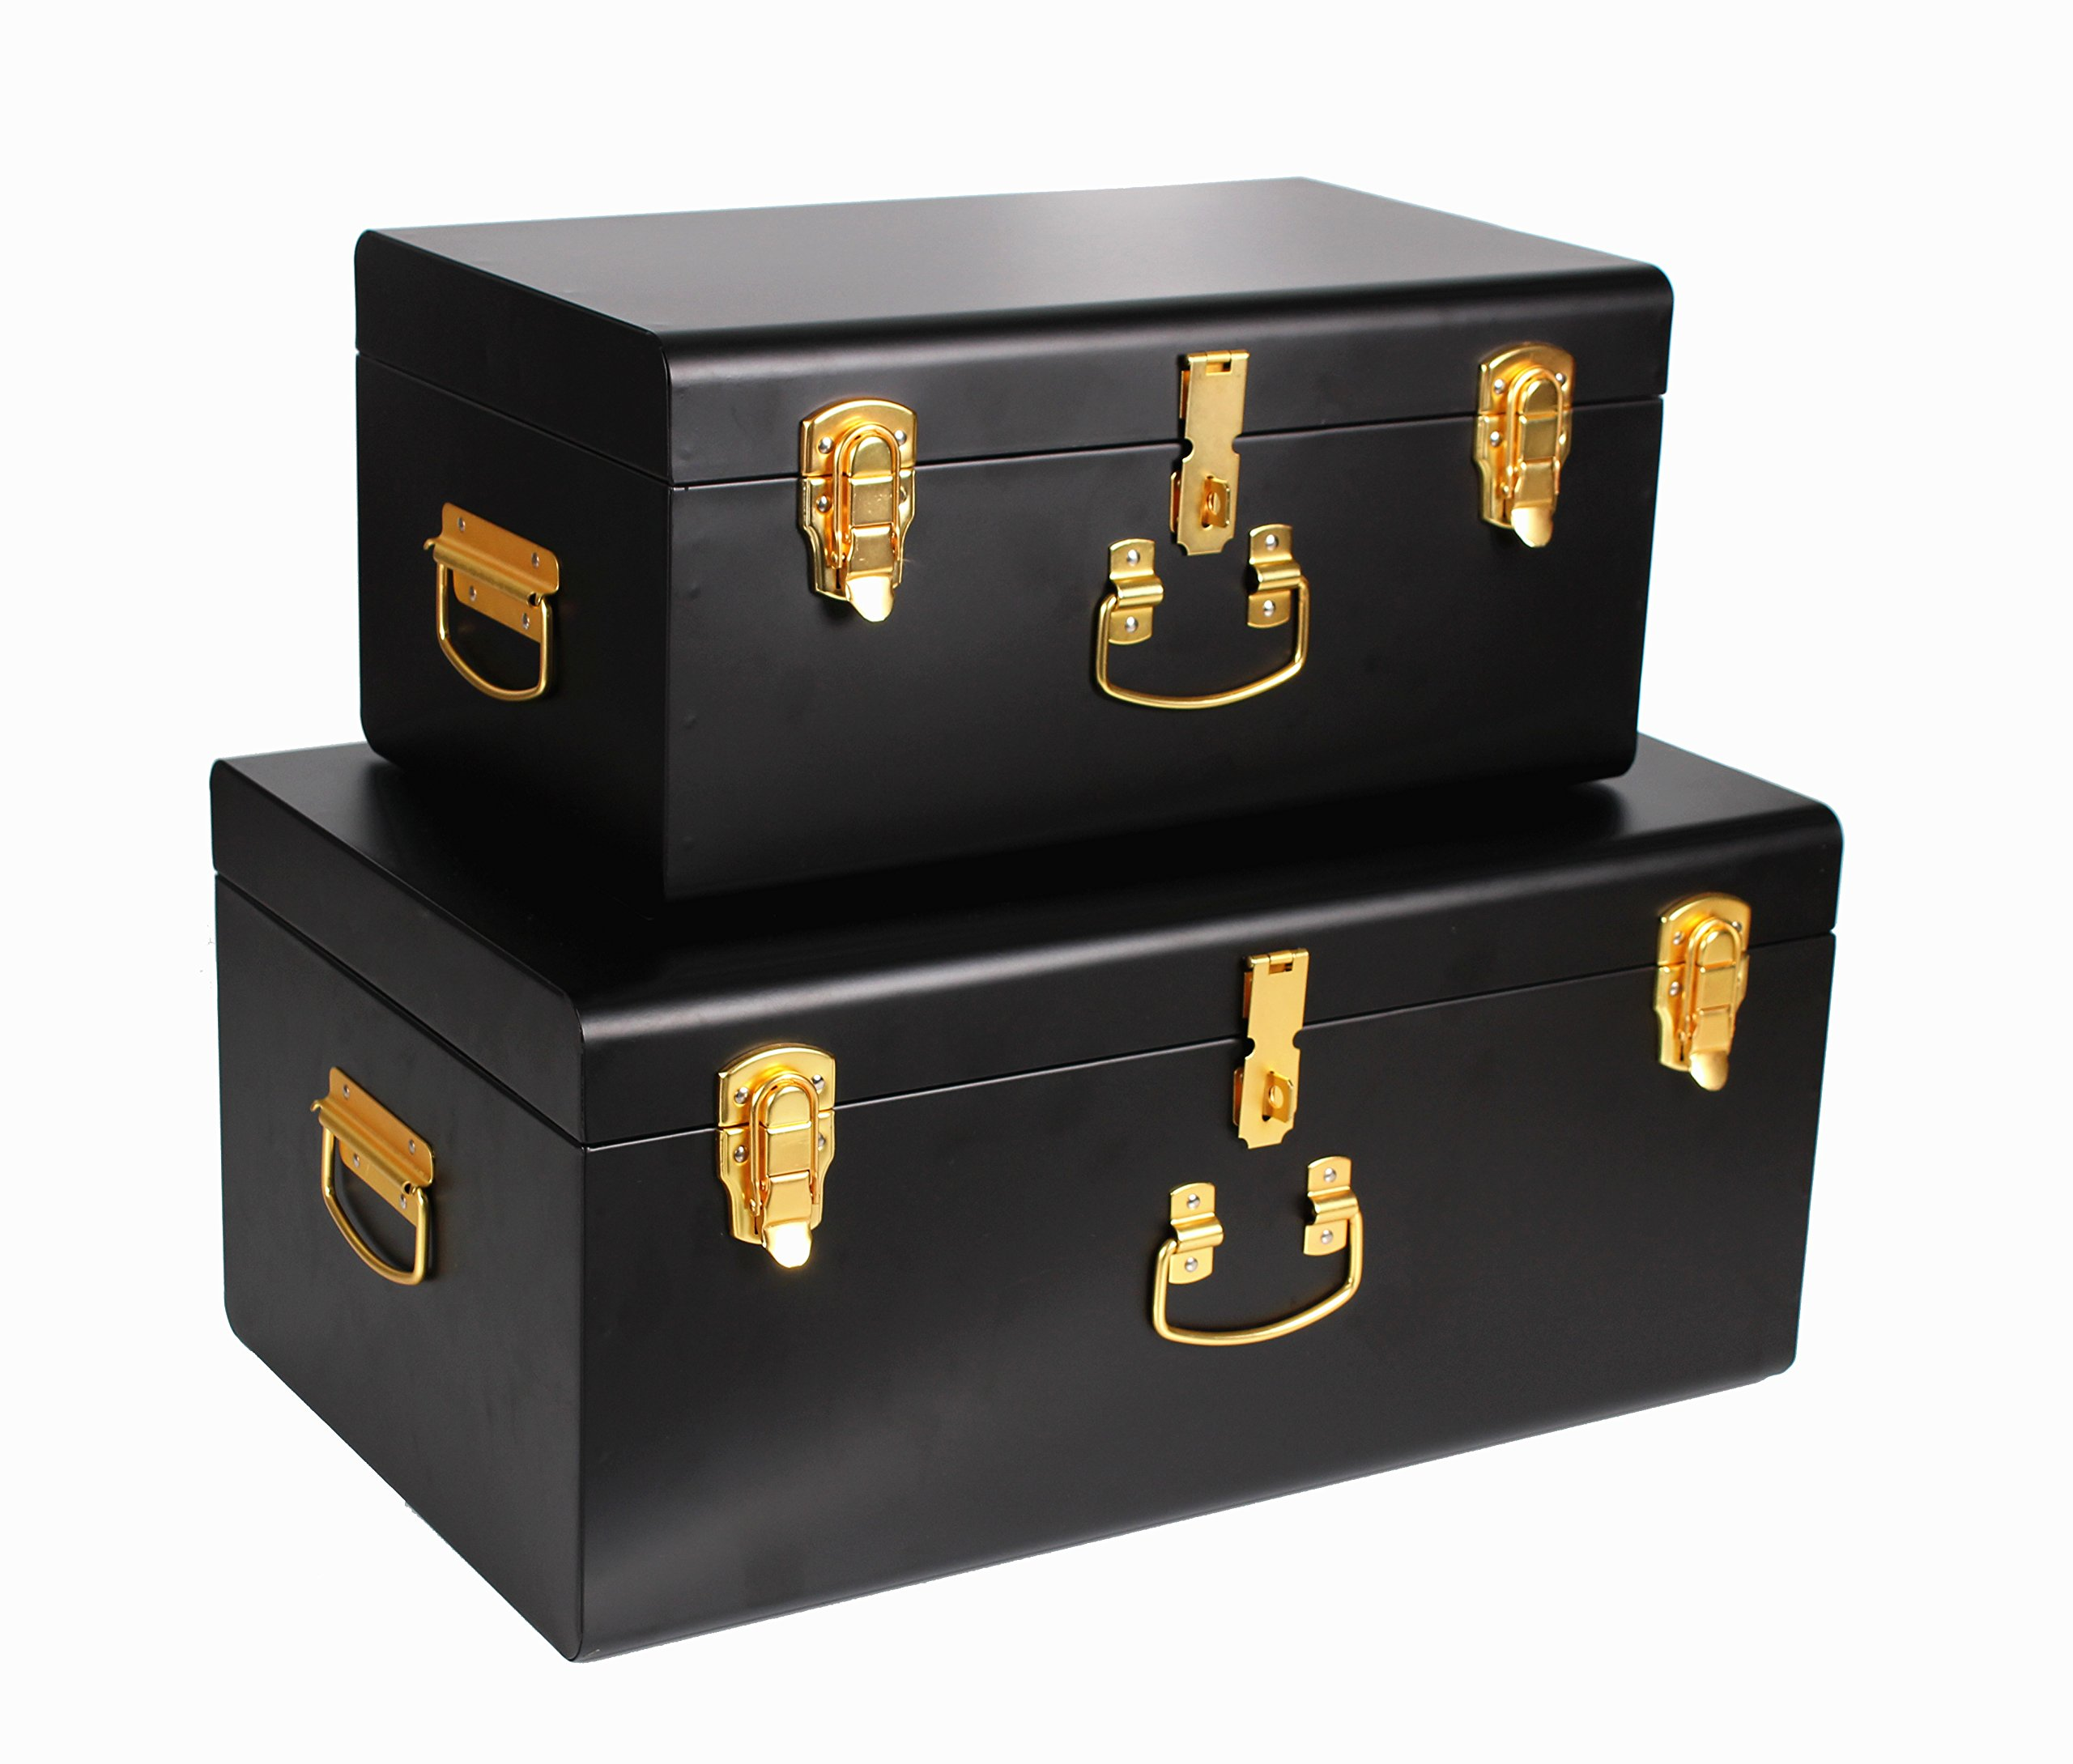 WiiSHAM Black Vintage-Style Steel Metal Storage Trunk Set with Gold Handles - Dorm & Bedroom Footlocker